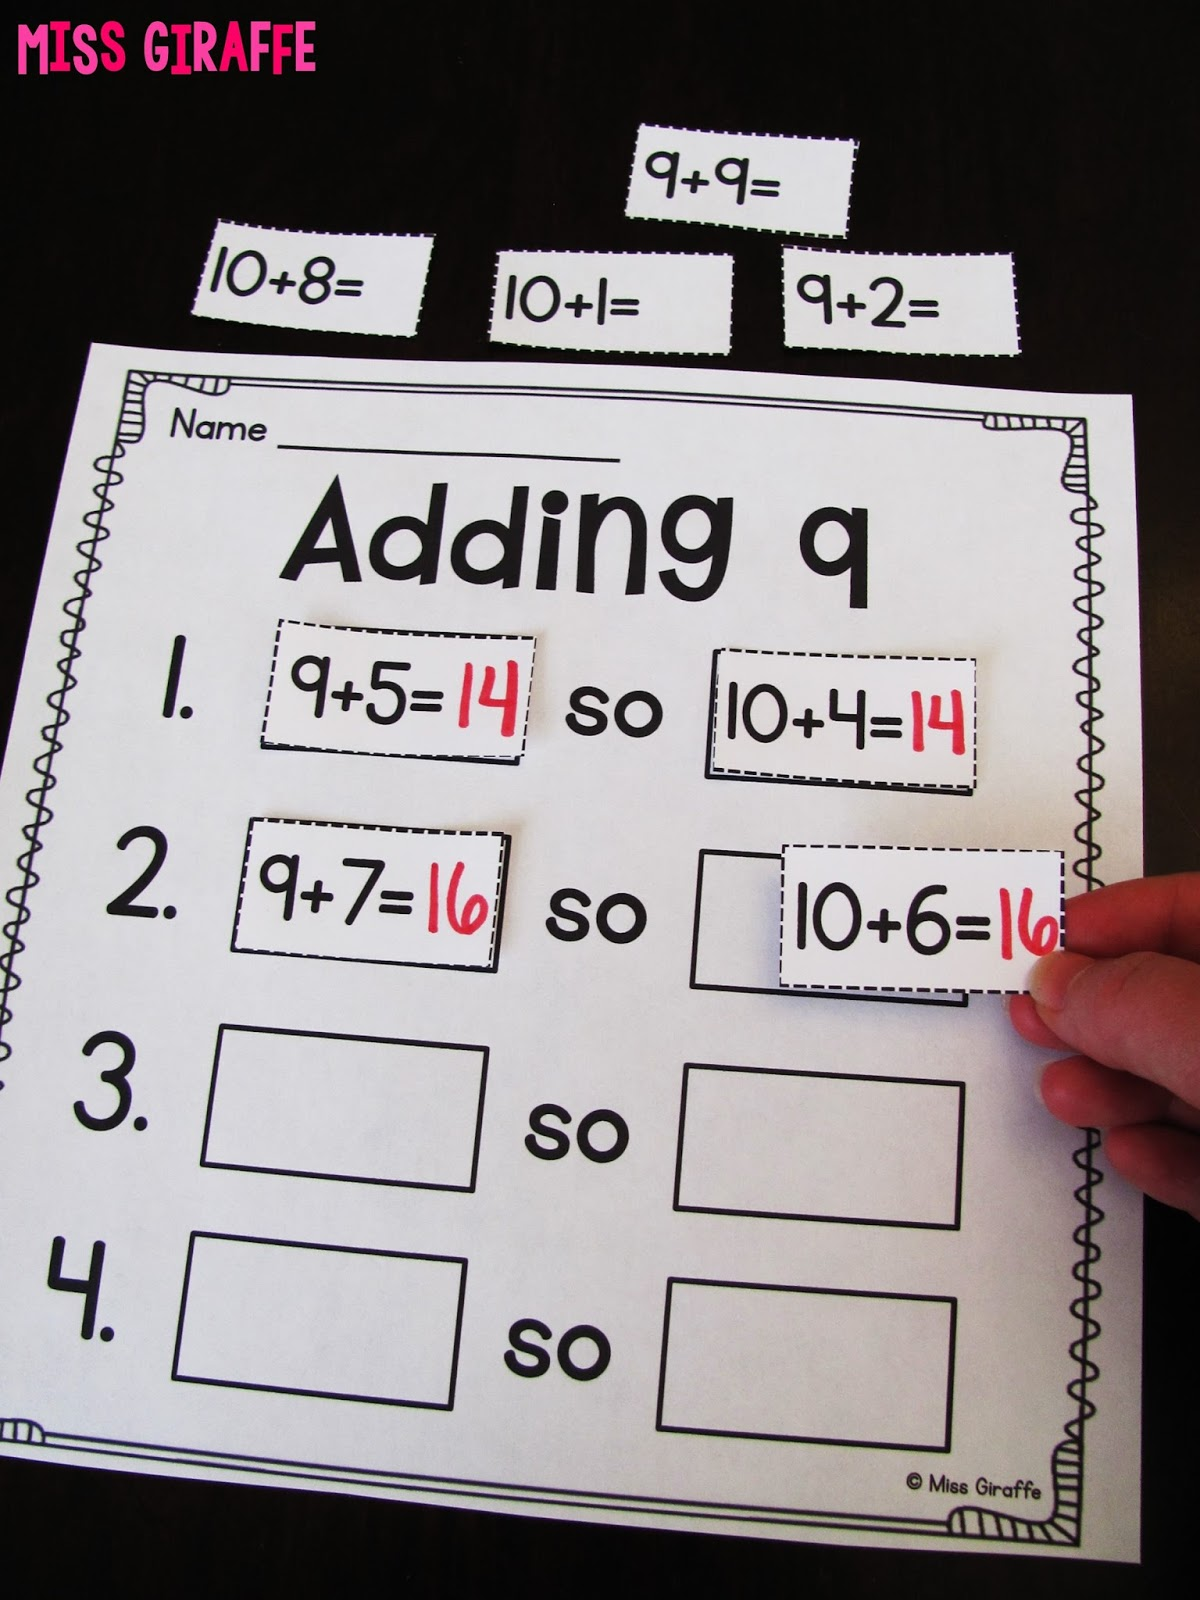 worksheet Ways To Make A Number Worksheet miss giraffes class making a 10 to add adding 9 by addition strategy and lots of other fun ways teach